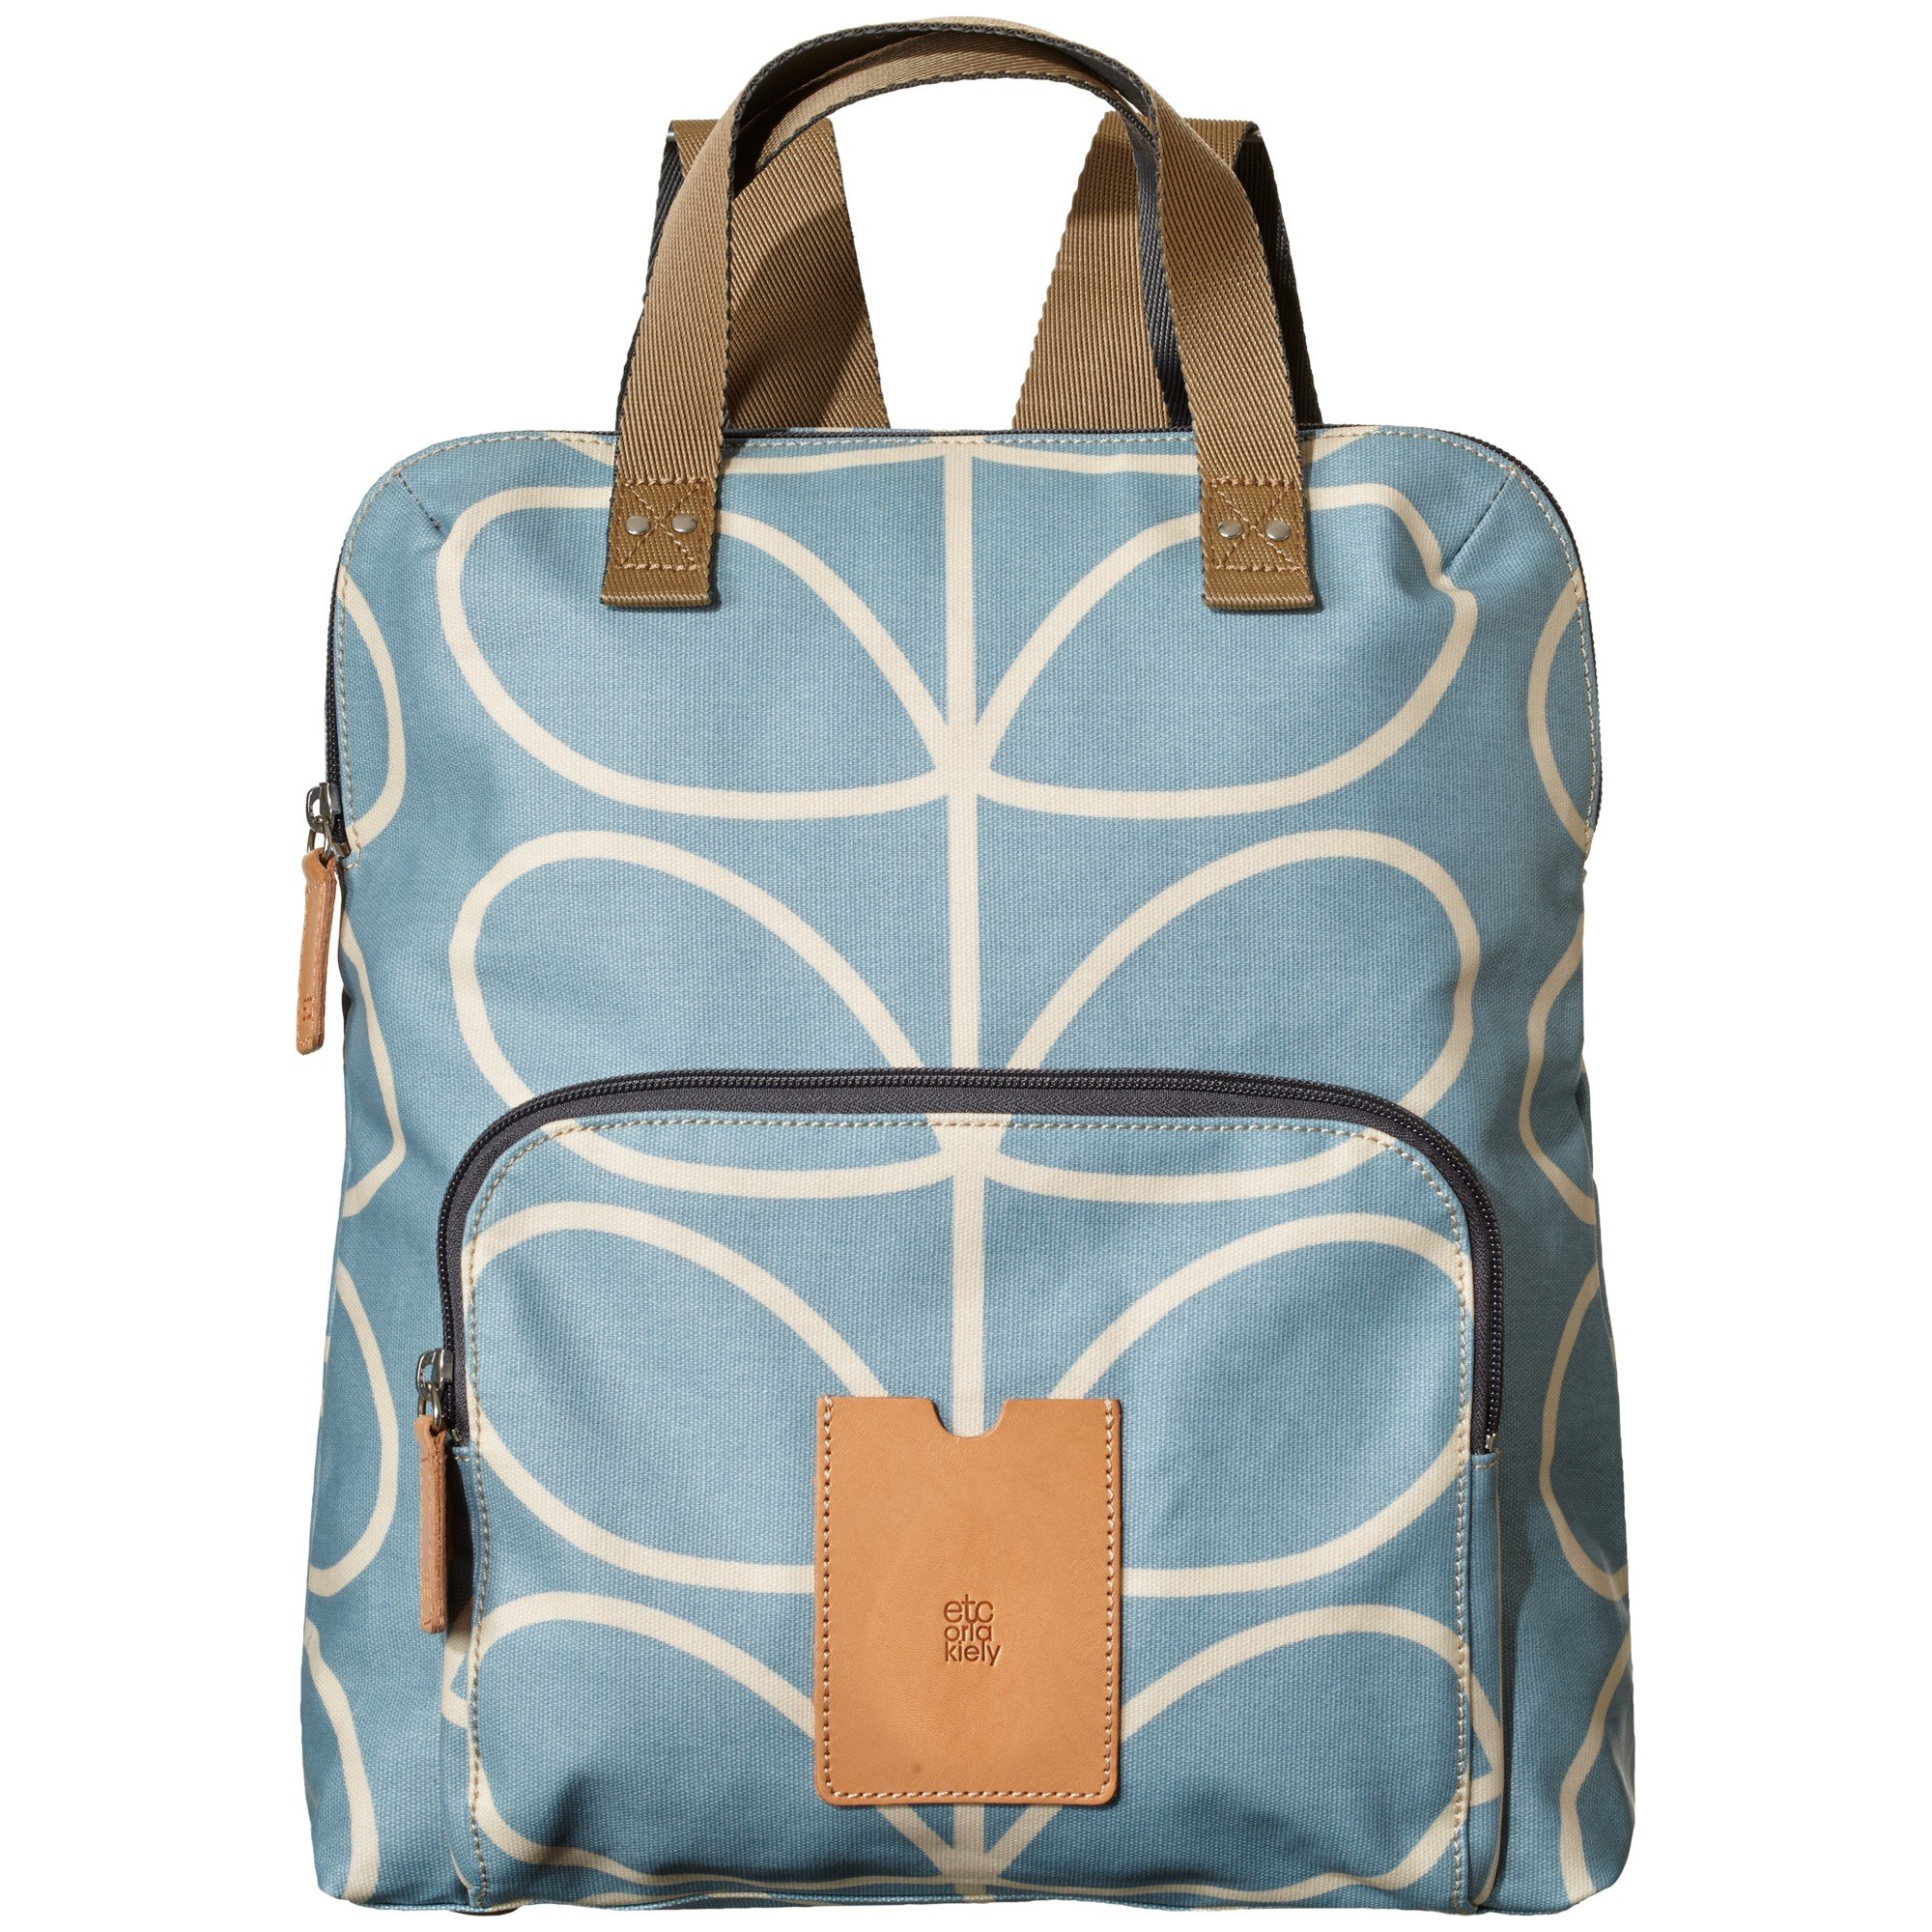 5fb3a0c21c16 Orla Kiely Giant Linear Stem Print Backpack Tote in Blue - Lyst